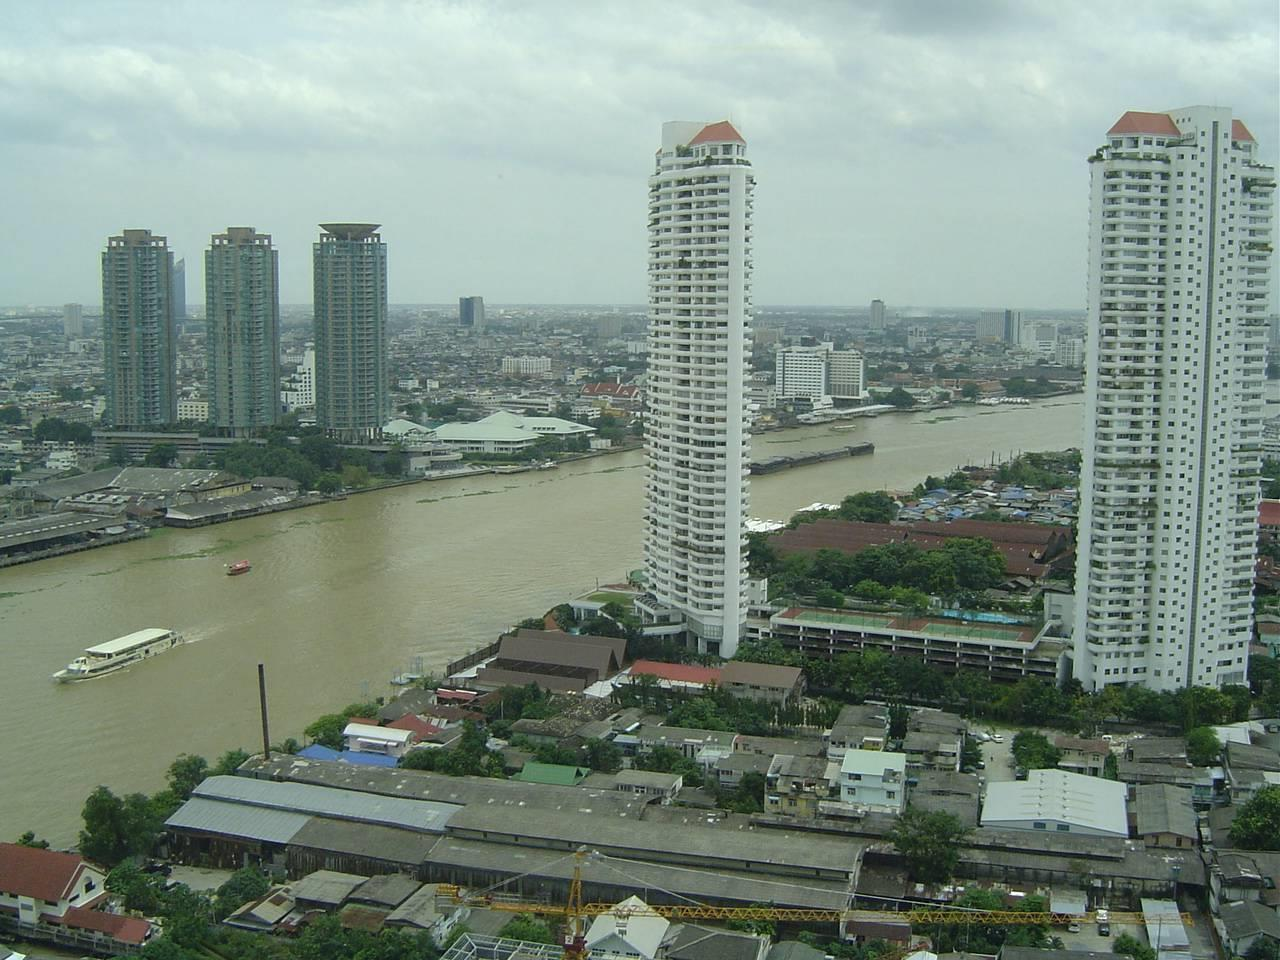 Quality Life Property Agency's For Rent Condo Baan Chao Praya Sathorn 1 Bedroom 1 Bath High Floor Top View 9